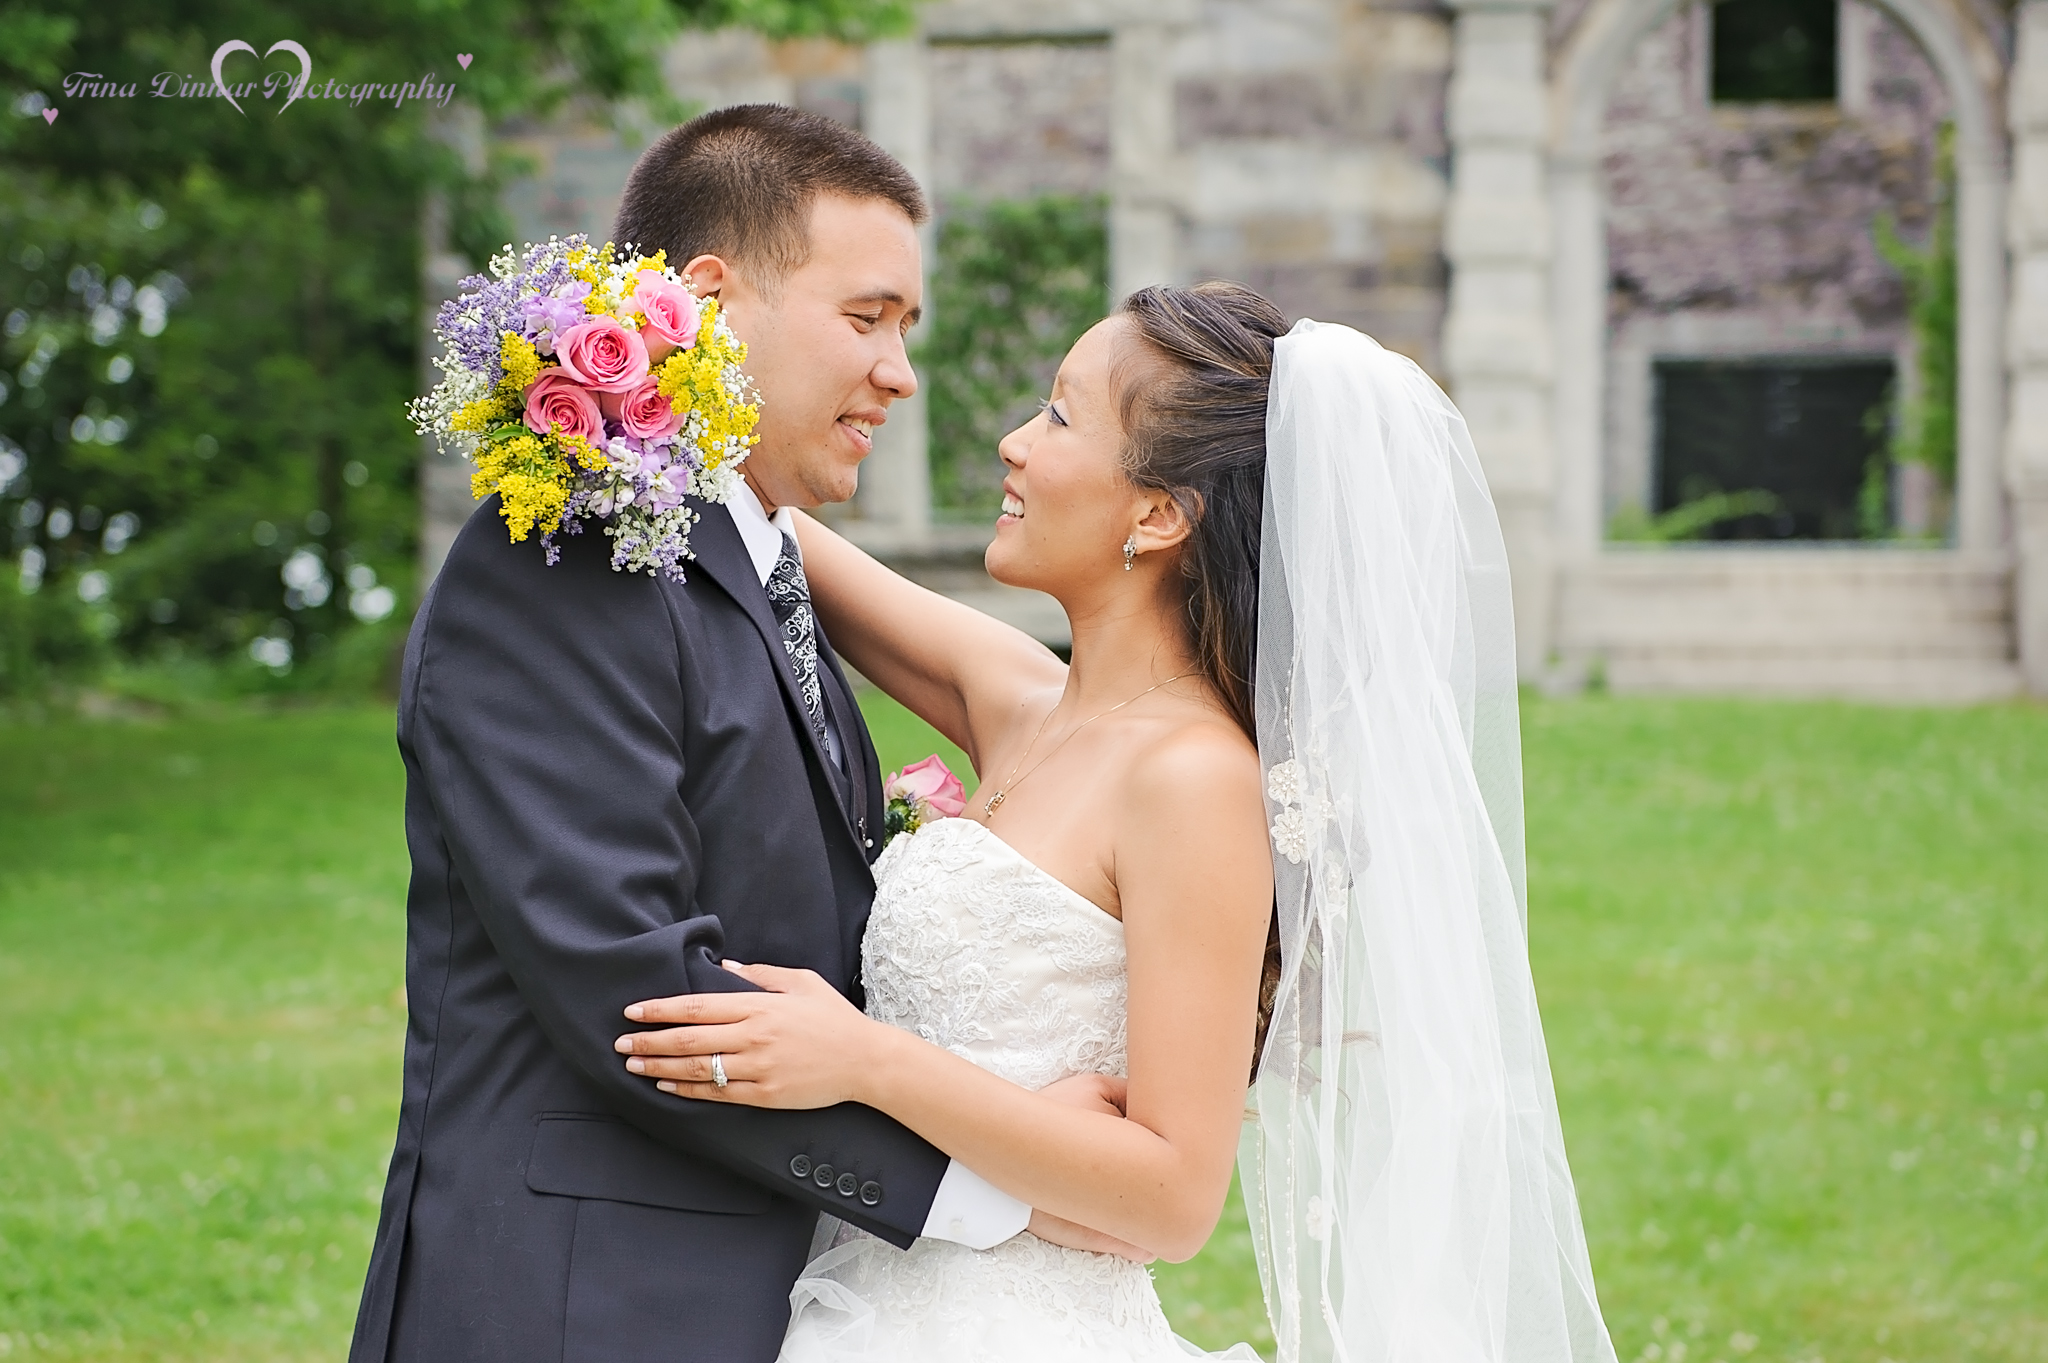 The bride and groom embrace during their Maine wedding. The photographer loved capturing their special day.